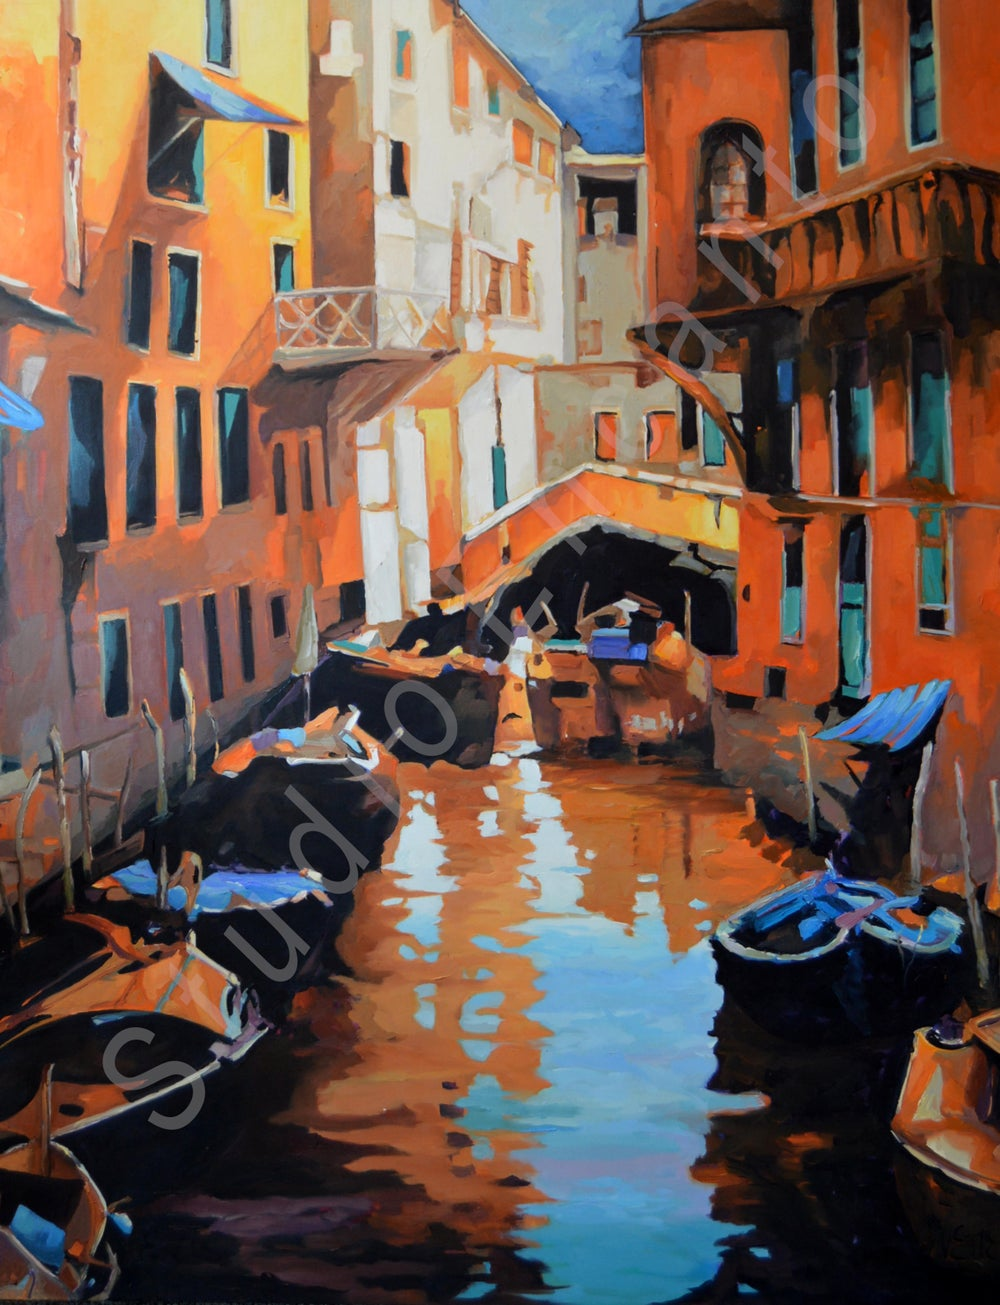 Image of Venecia by Yvette Galliher